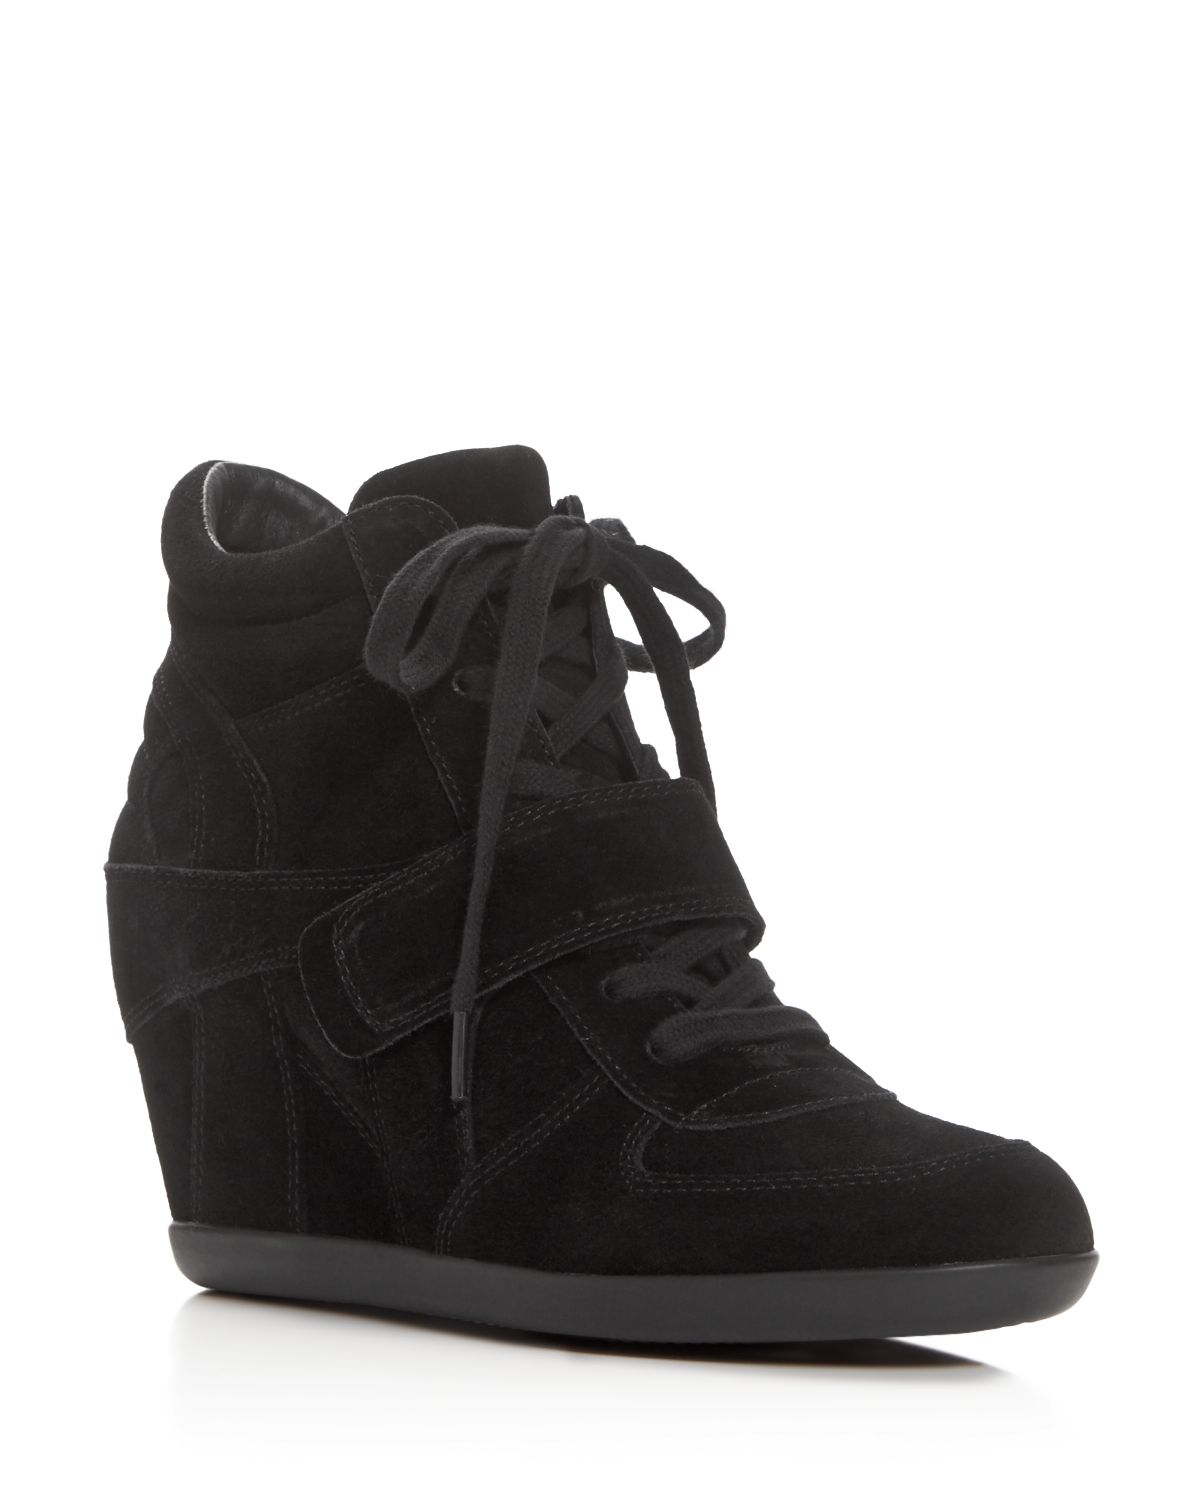 Women's Bowie Lace Up Wedge Sneakers by Ash